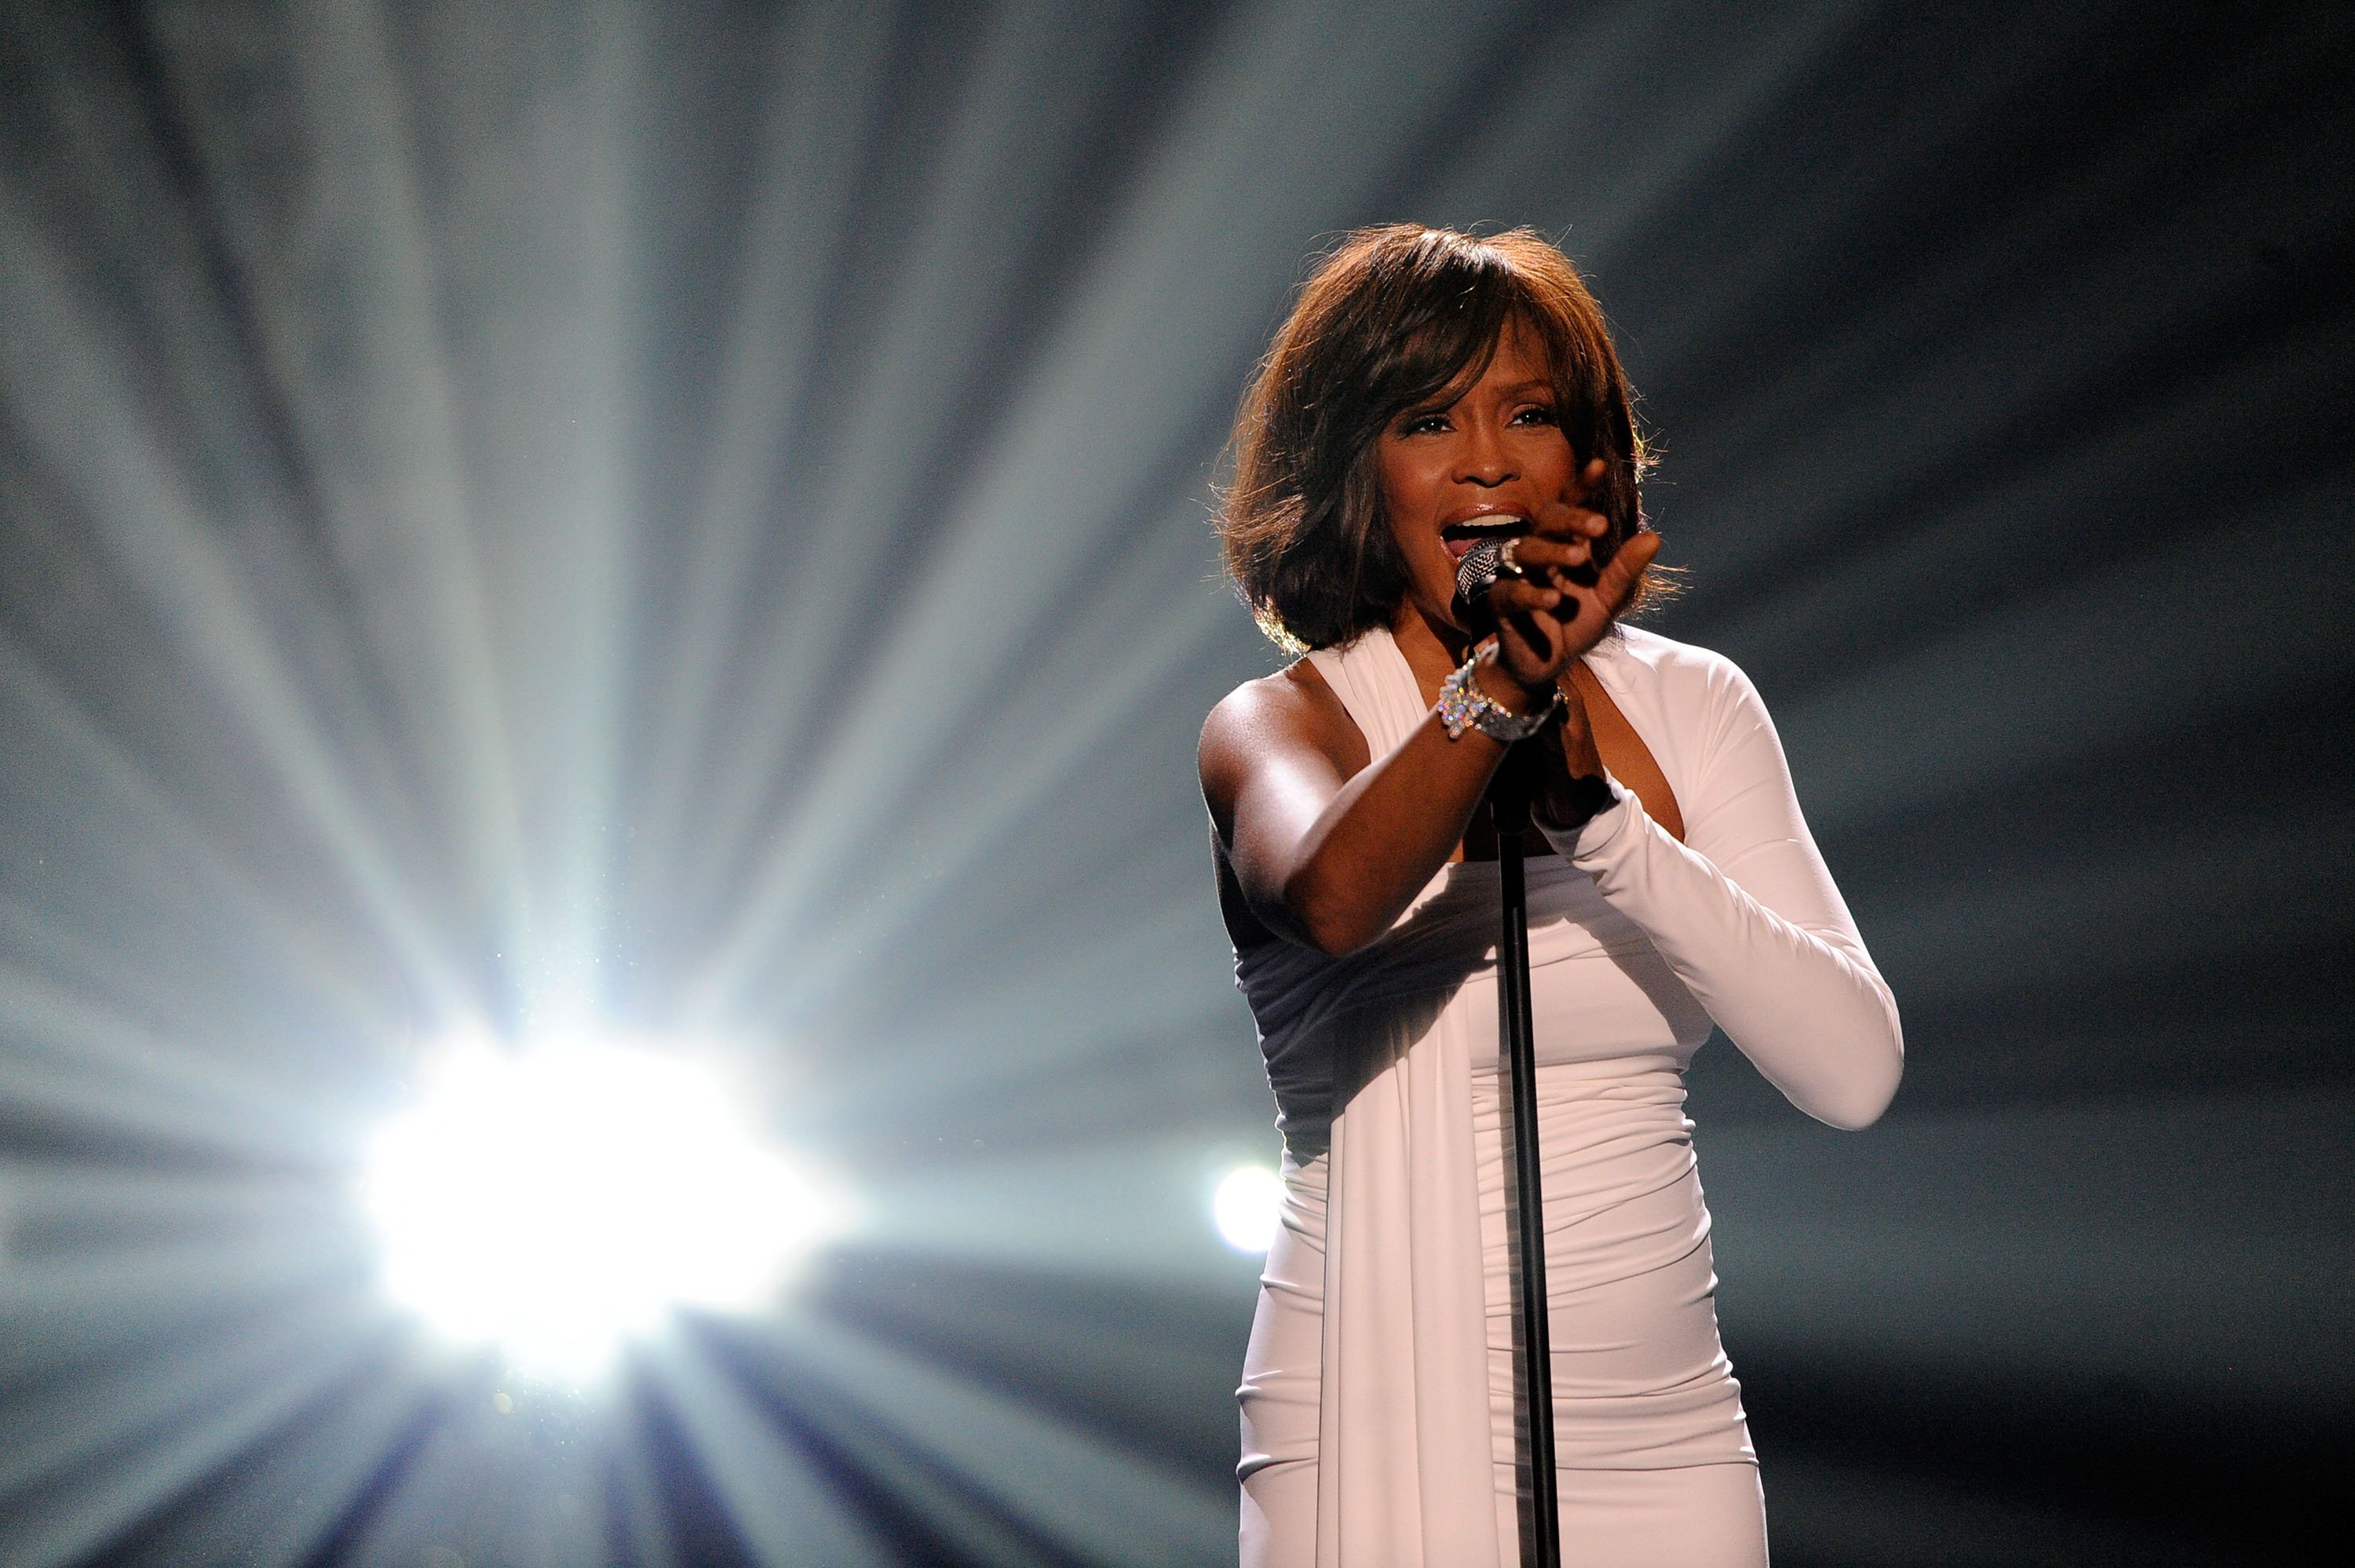 Whitney Houston performing during the 2009 American Music Awards show.   Photo: Getty Images